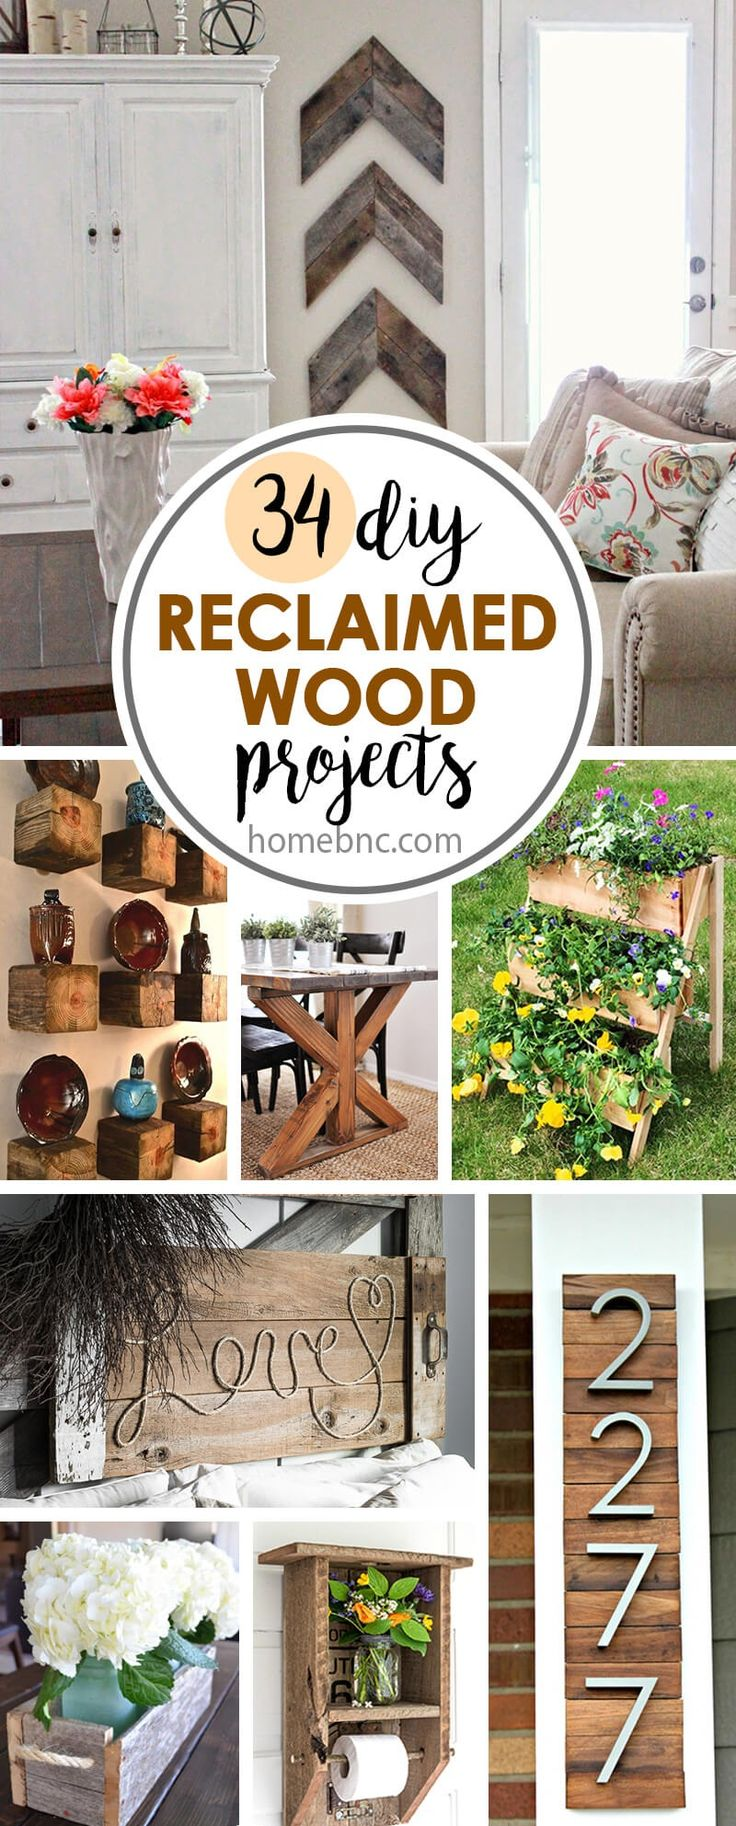 Here are some projects for you that will have you second-guessing whether or not you should throw that old wooden crate away, or if you should pick up that wooden pallet off the side of the road that someone has carelessly ditched. Old wooden frames, antiquated barn boards, or really any scrap...